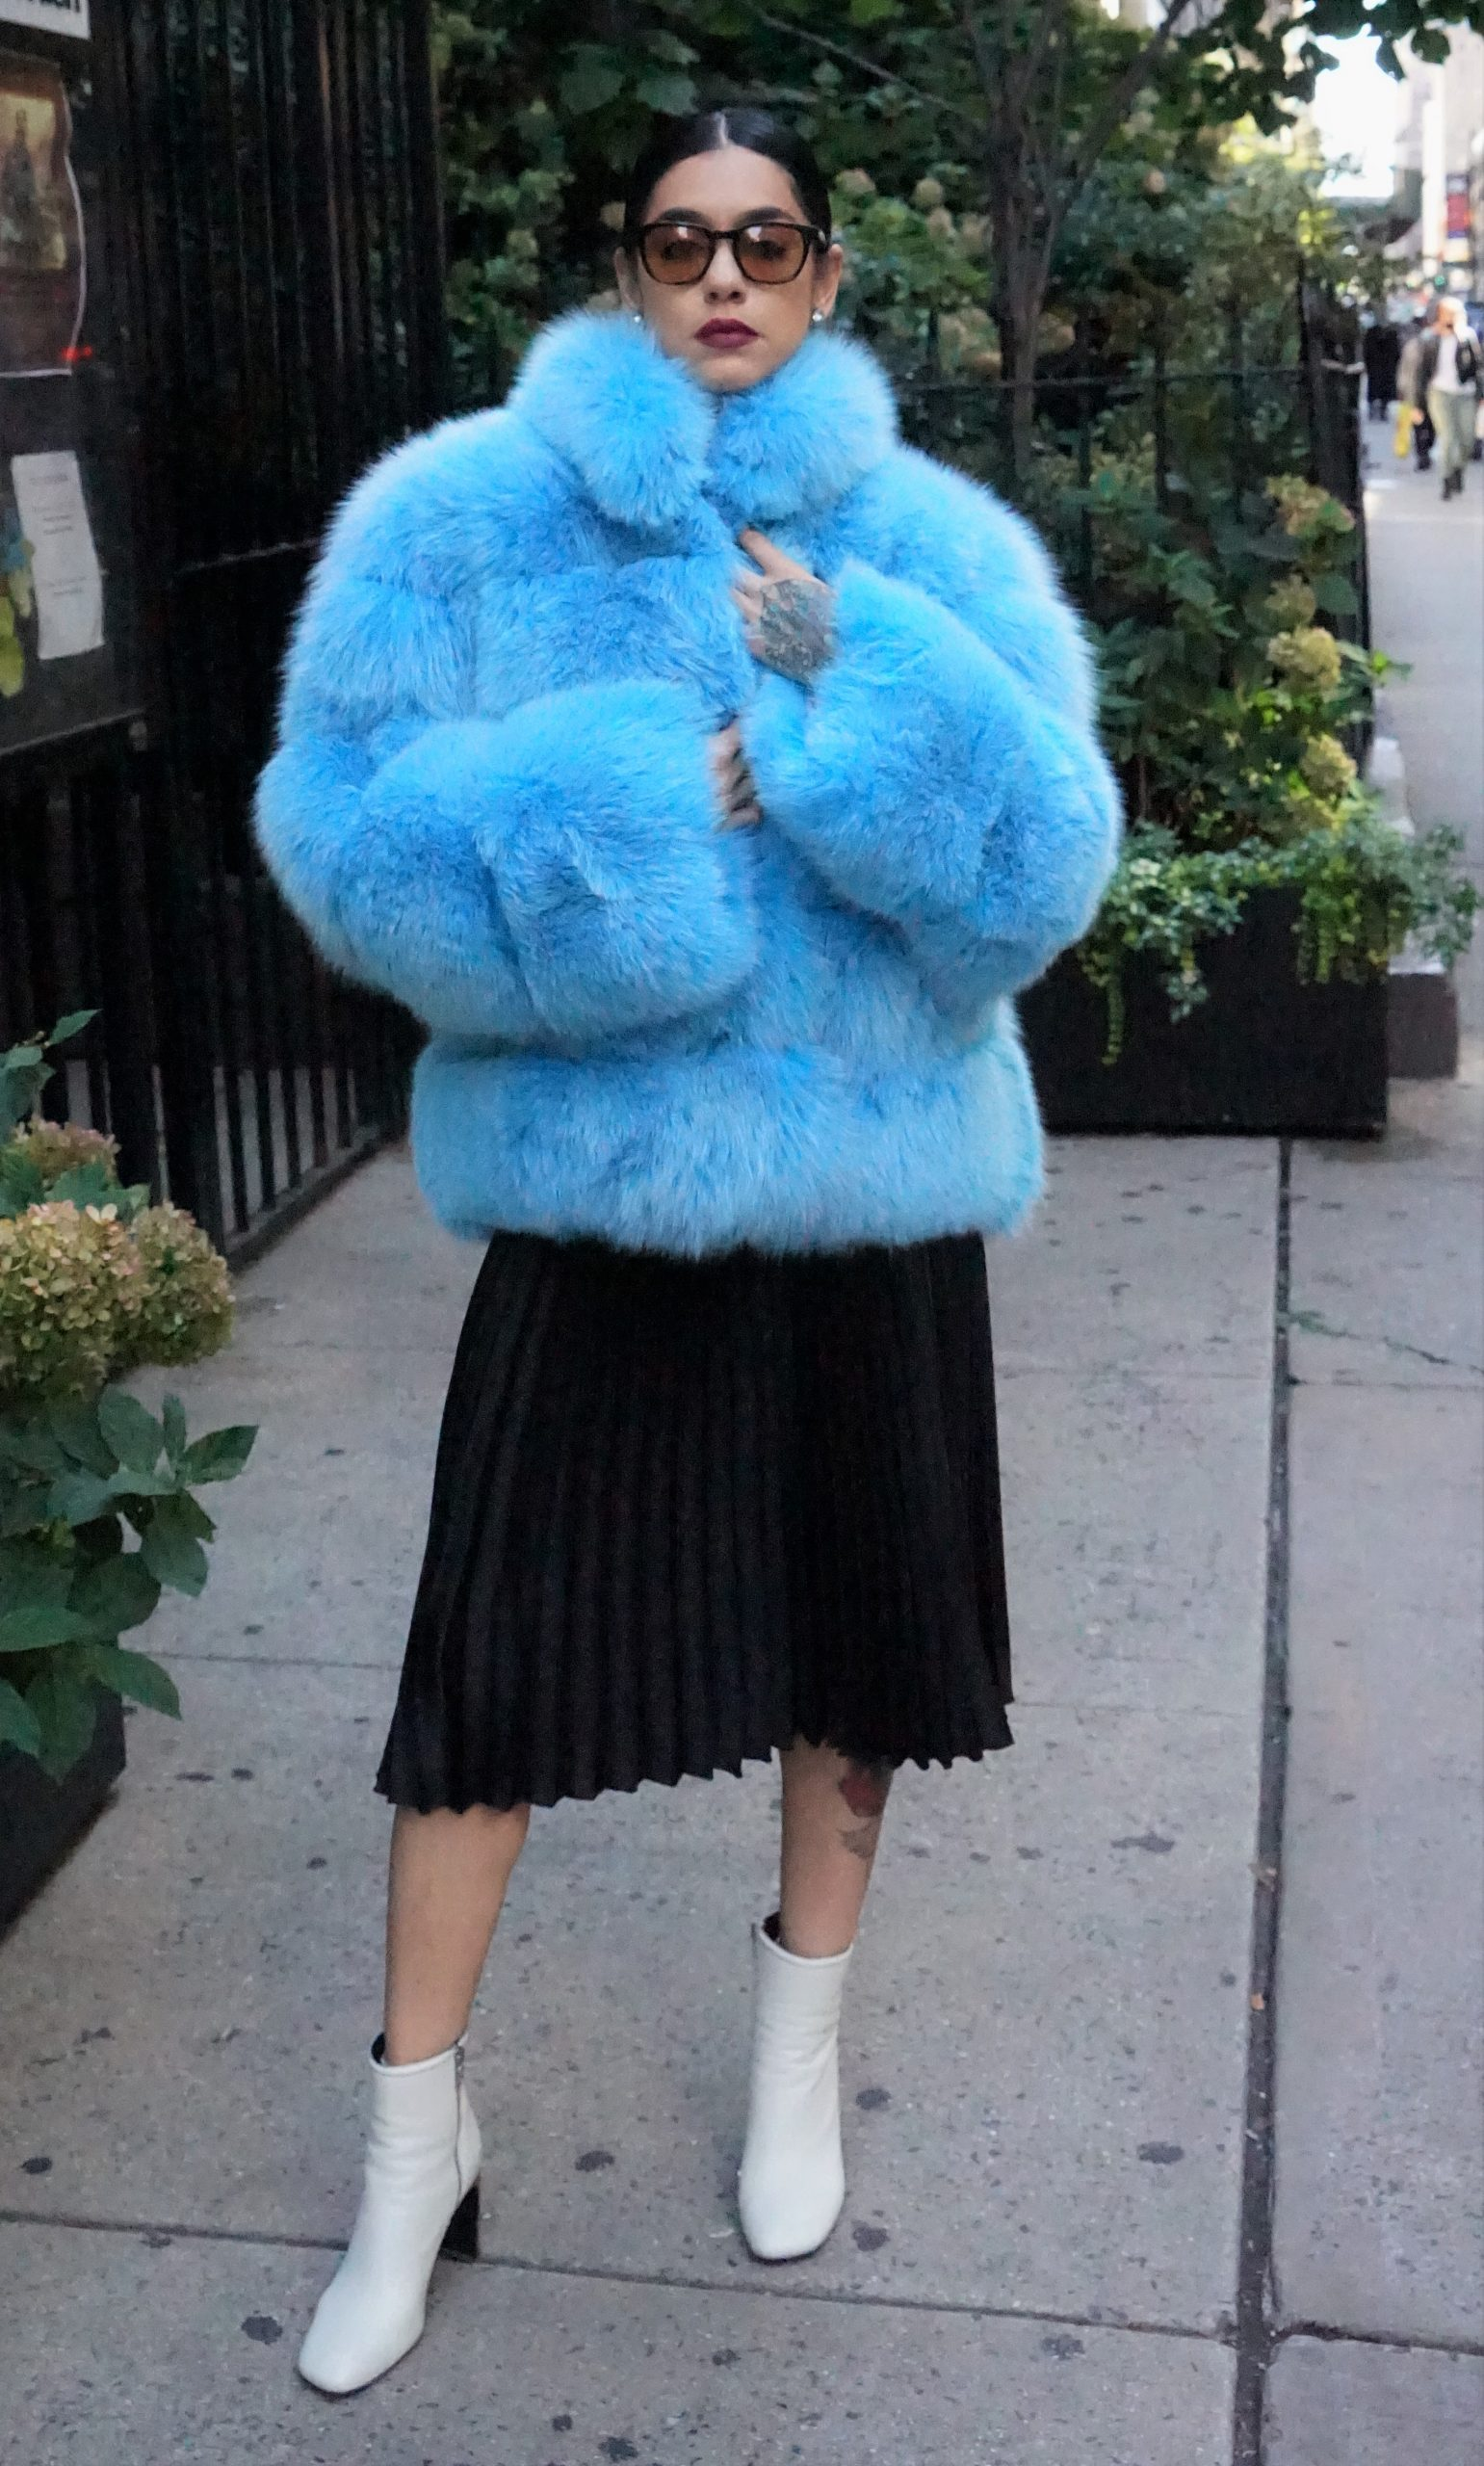 DYED SKY BLUE FOX JACKET